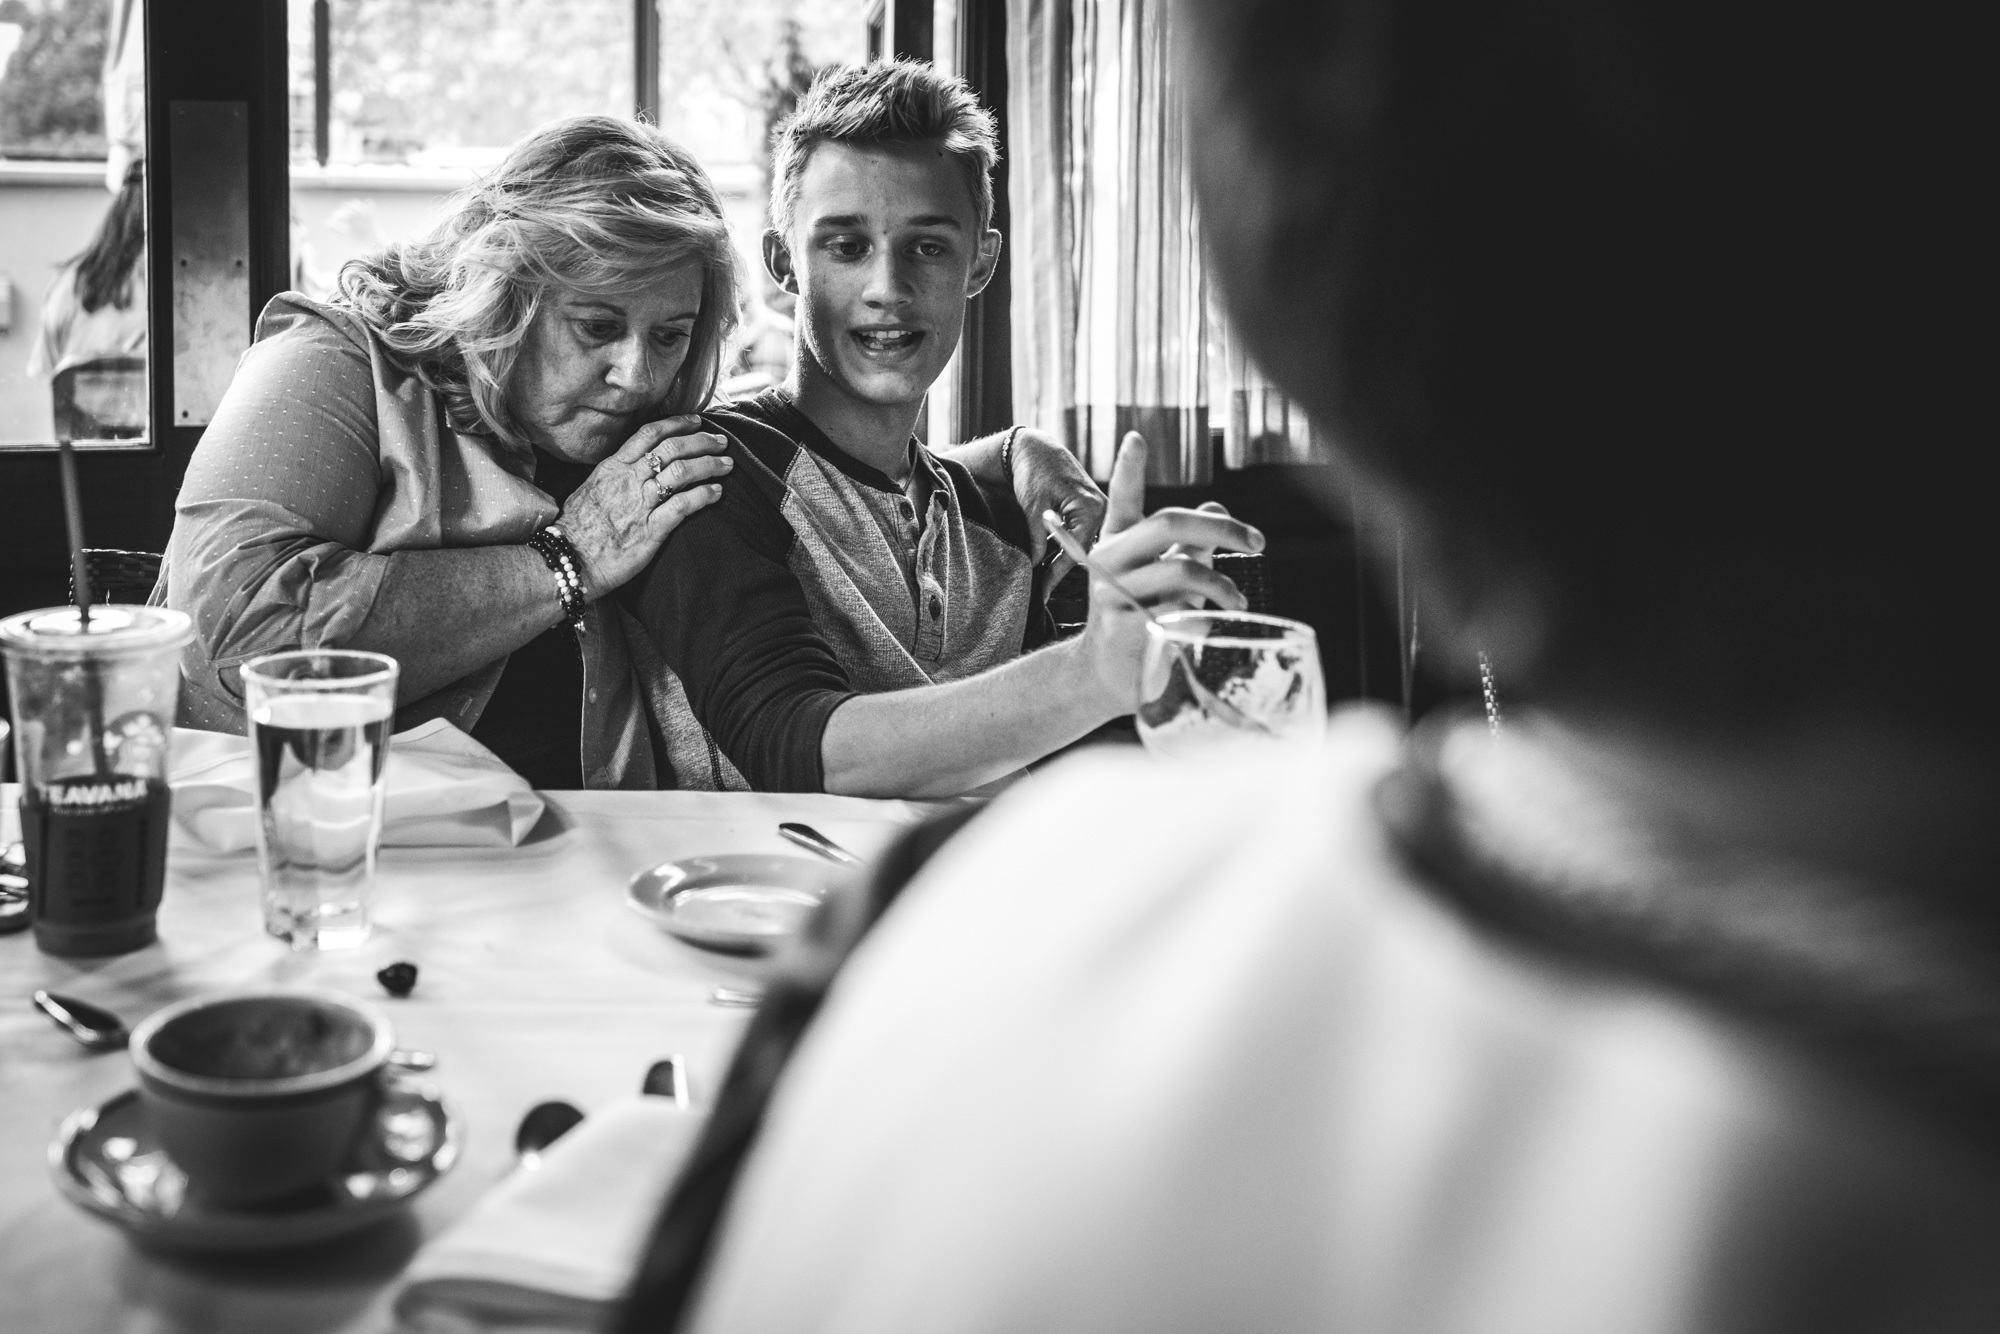 Black and white photo of a grandmother and grandson at a restaurant. The teenage grandson talks while his grandmother leans on and hugs him. Taken during a documentary event photography session in Denver, Colorado.